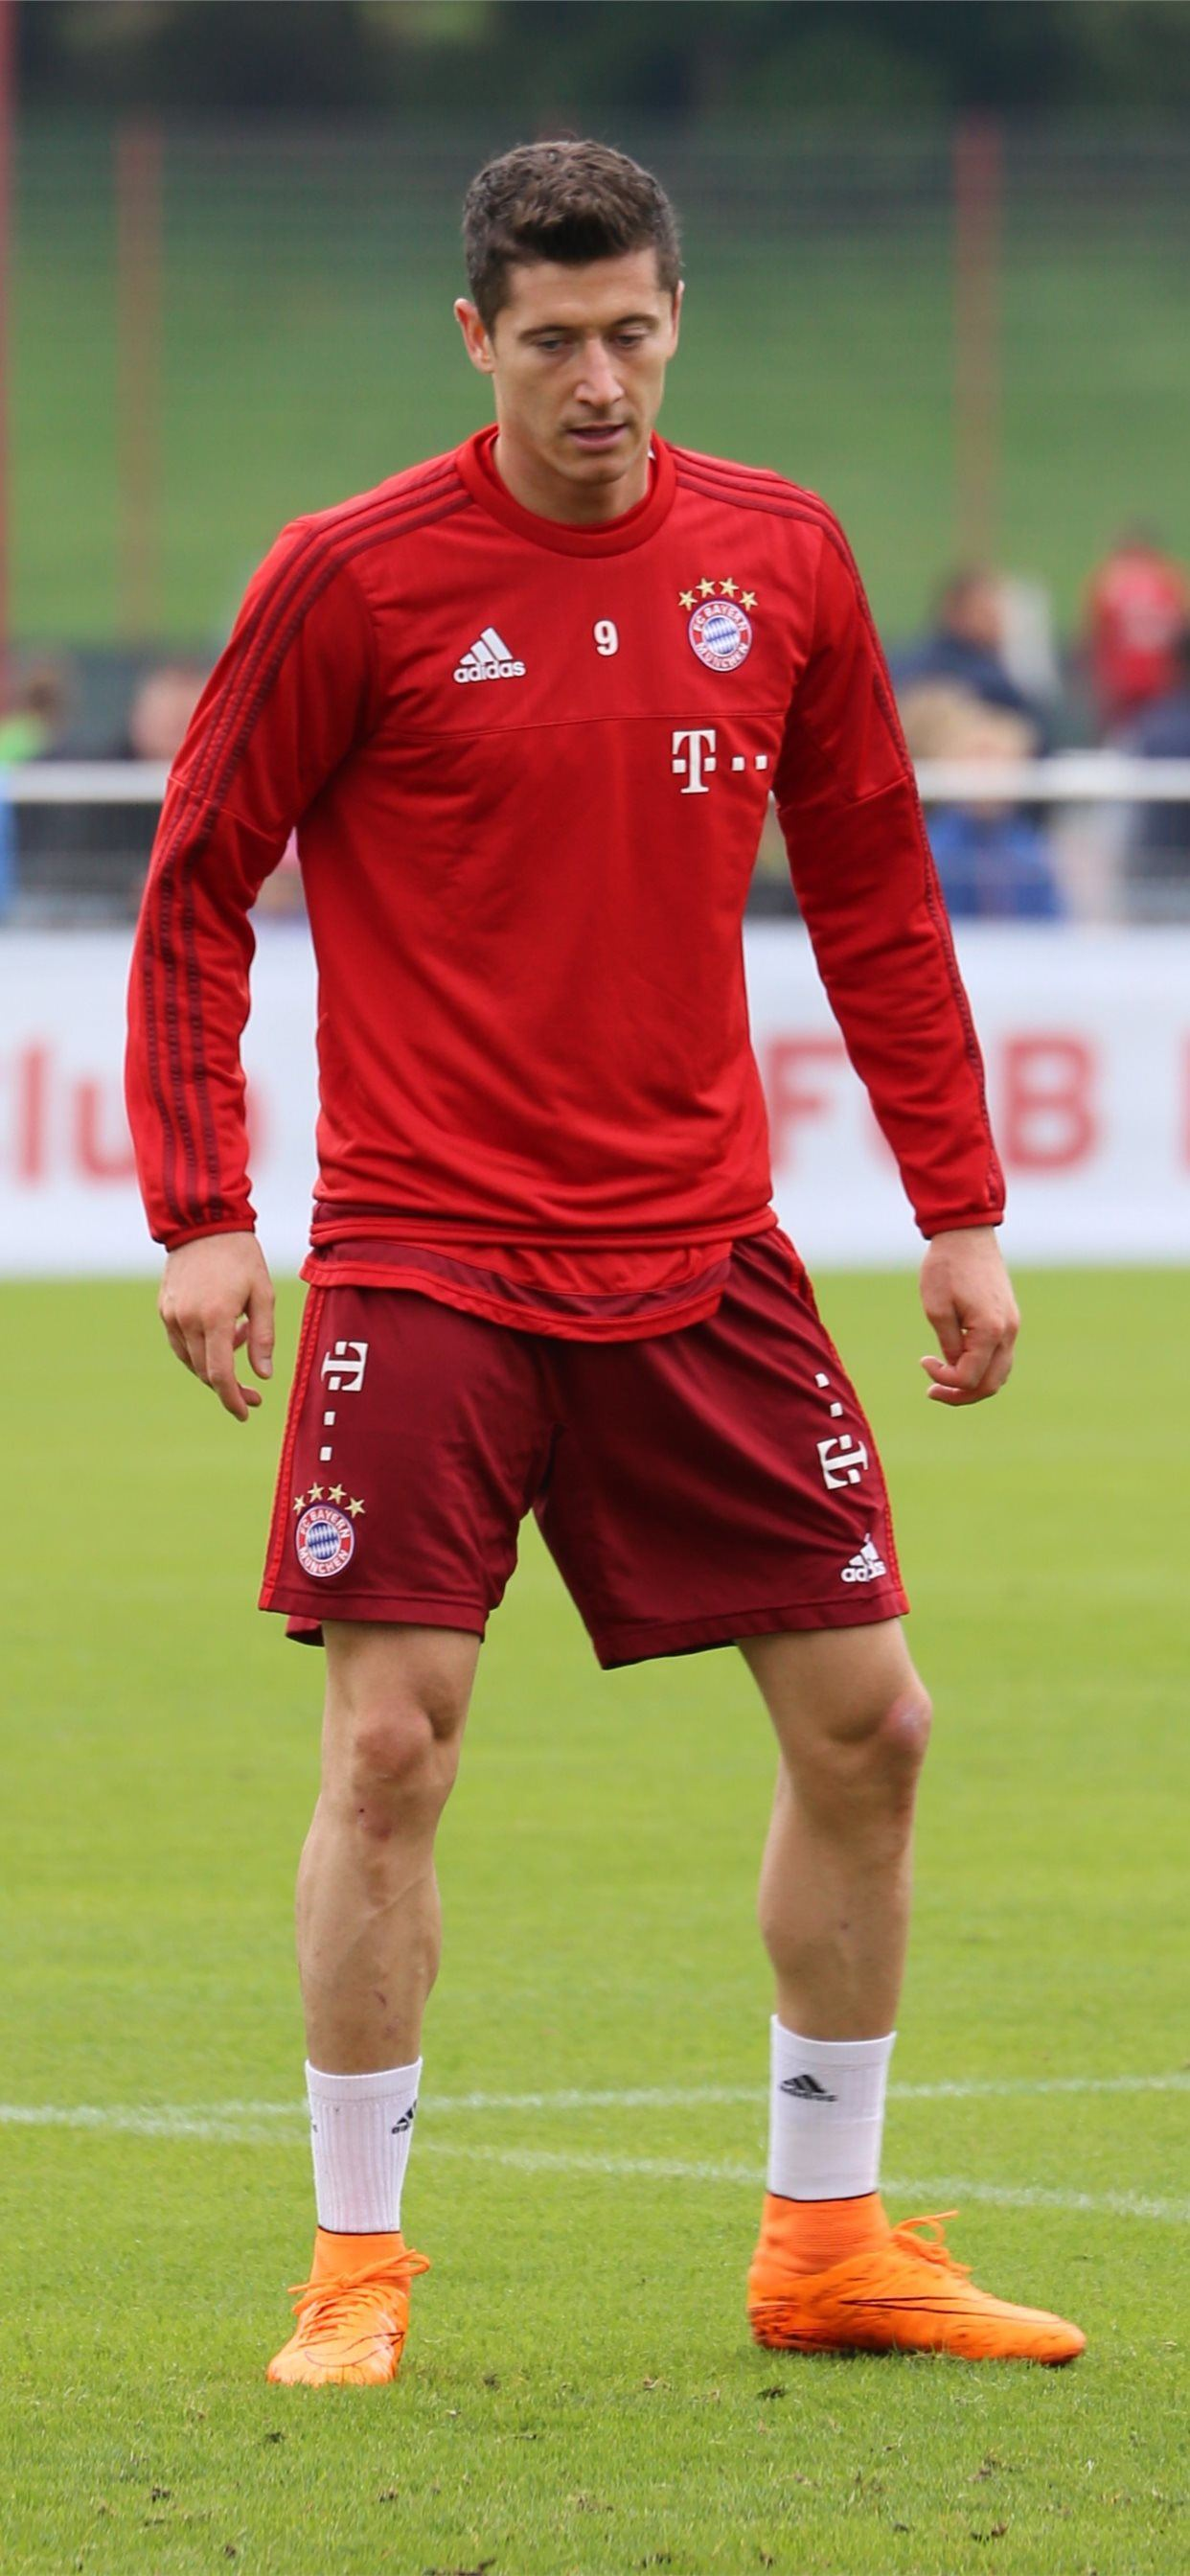 Robert Lewandowski Sports HQ Robert Lewandowski iPhone SE wallpaper